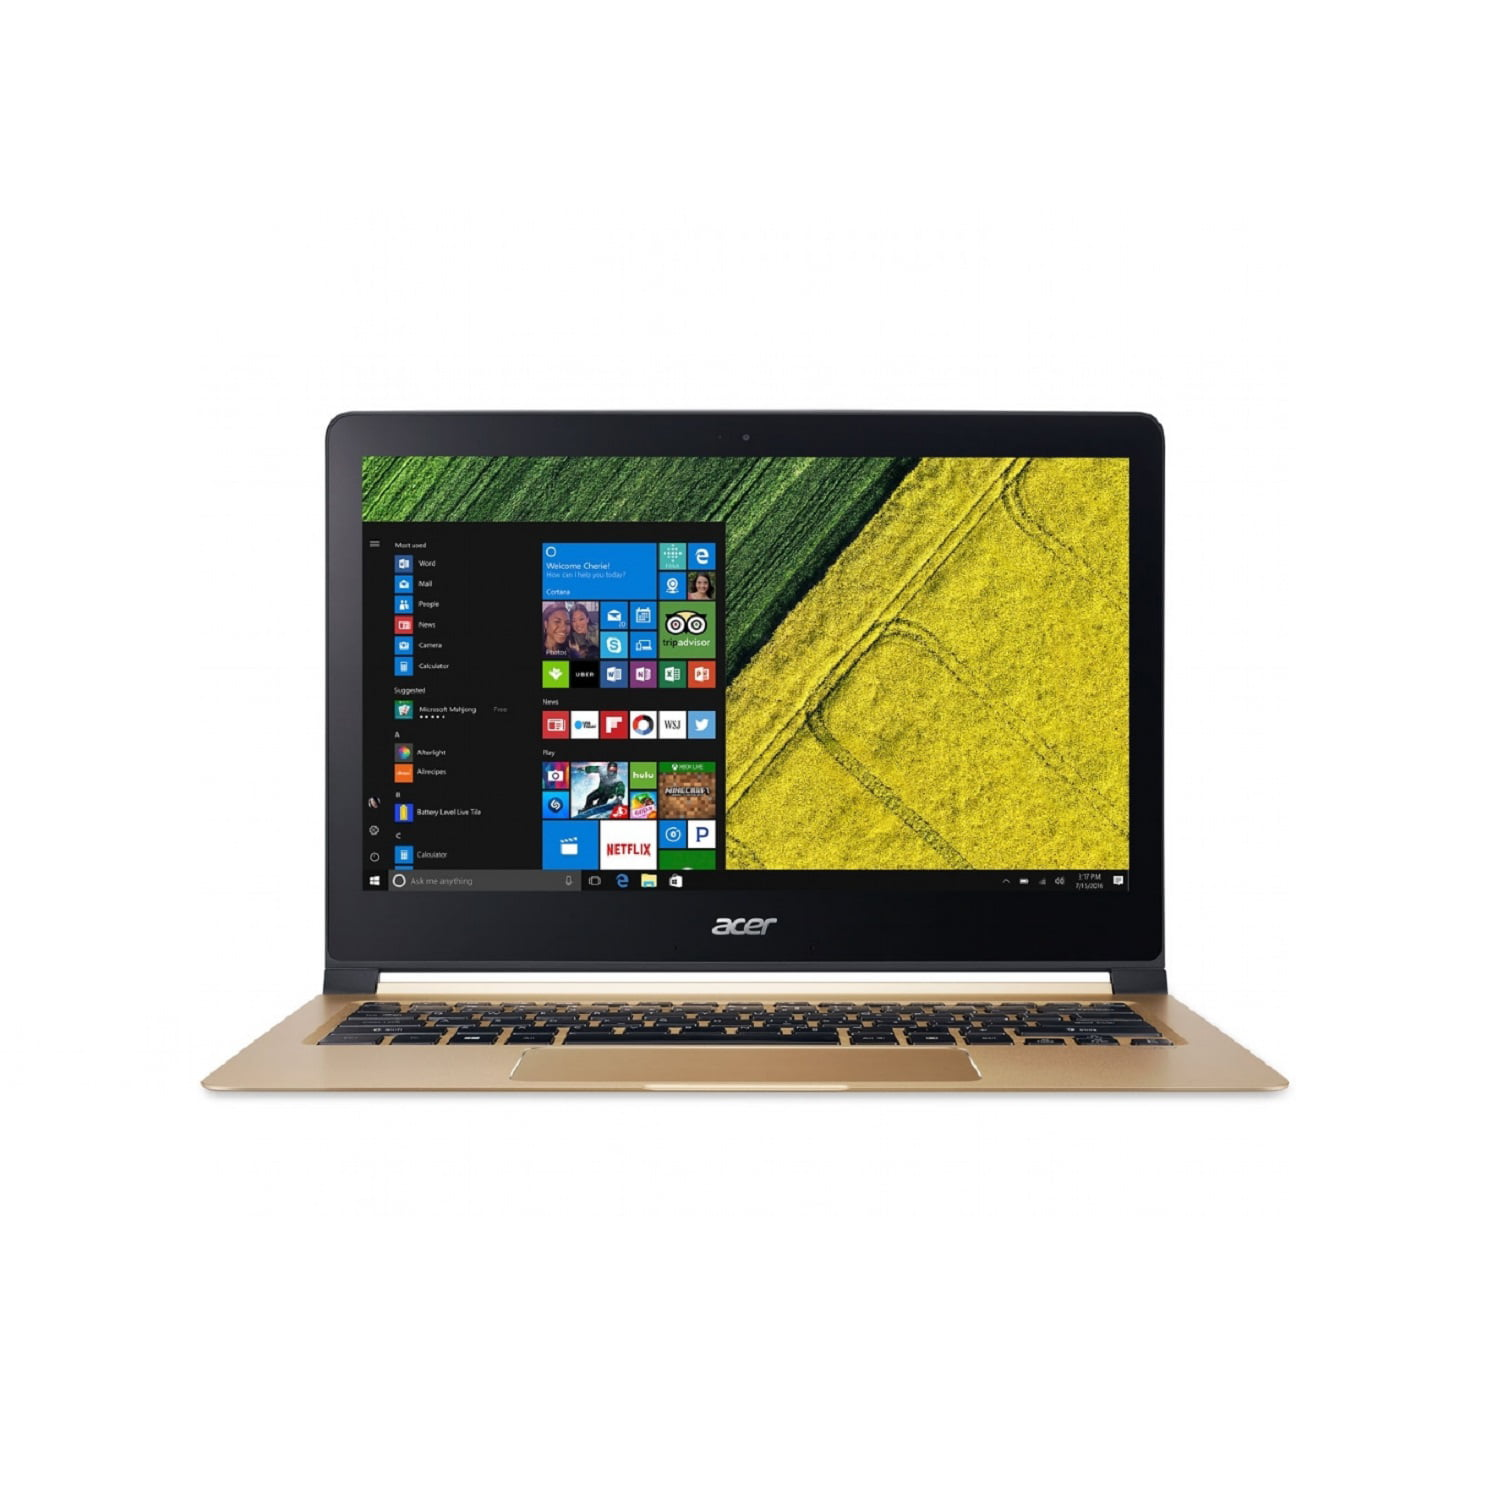 Acer Swift 7 Notebook with Intel i7-7Y75, 8GB 512GB SSD by Acer